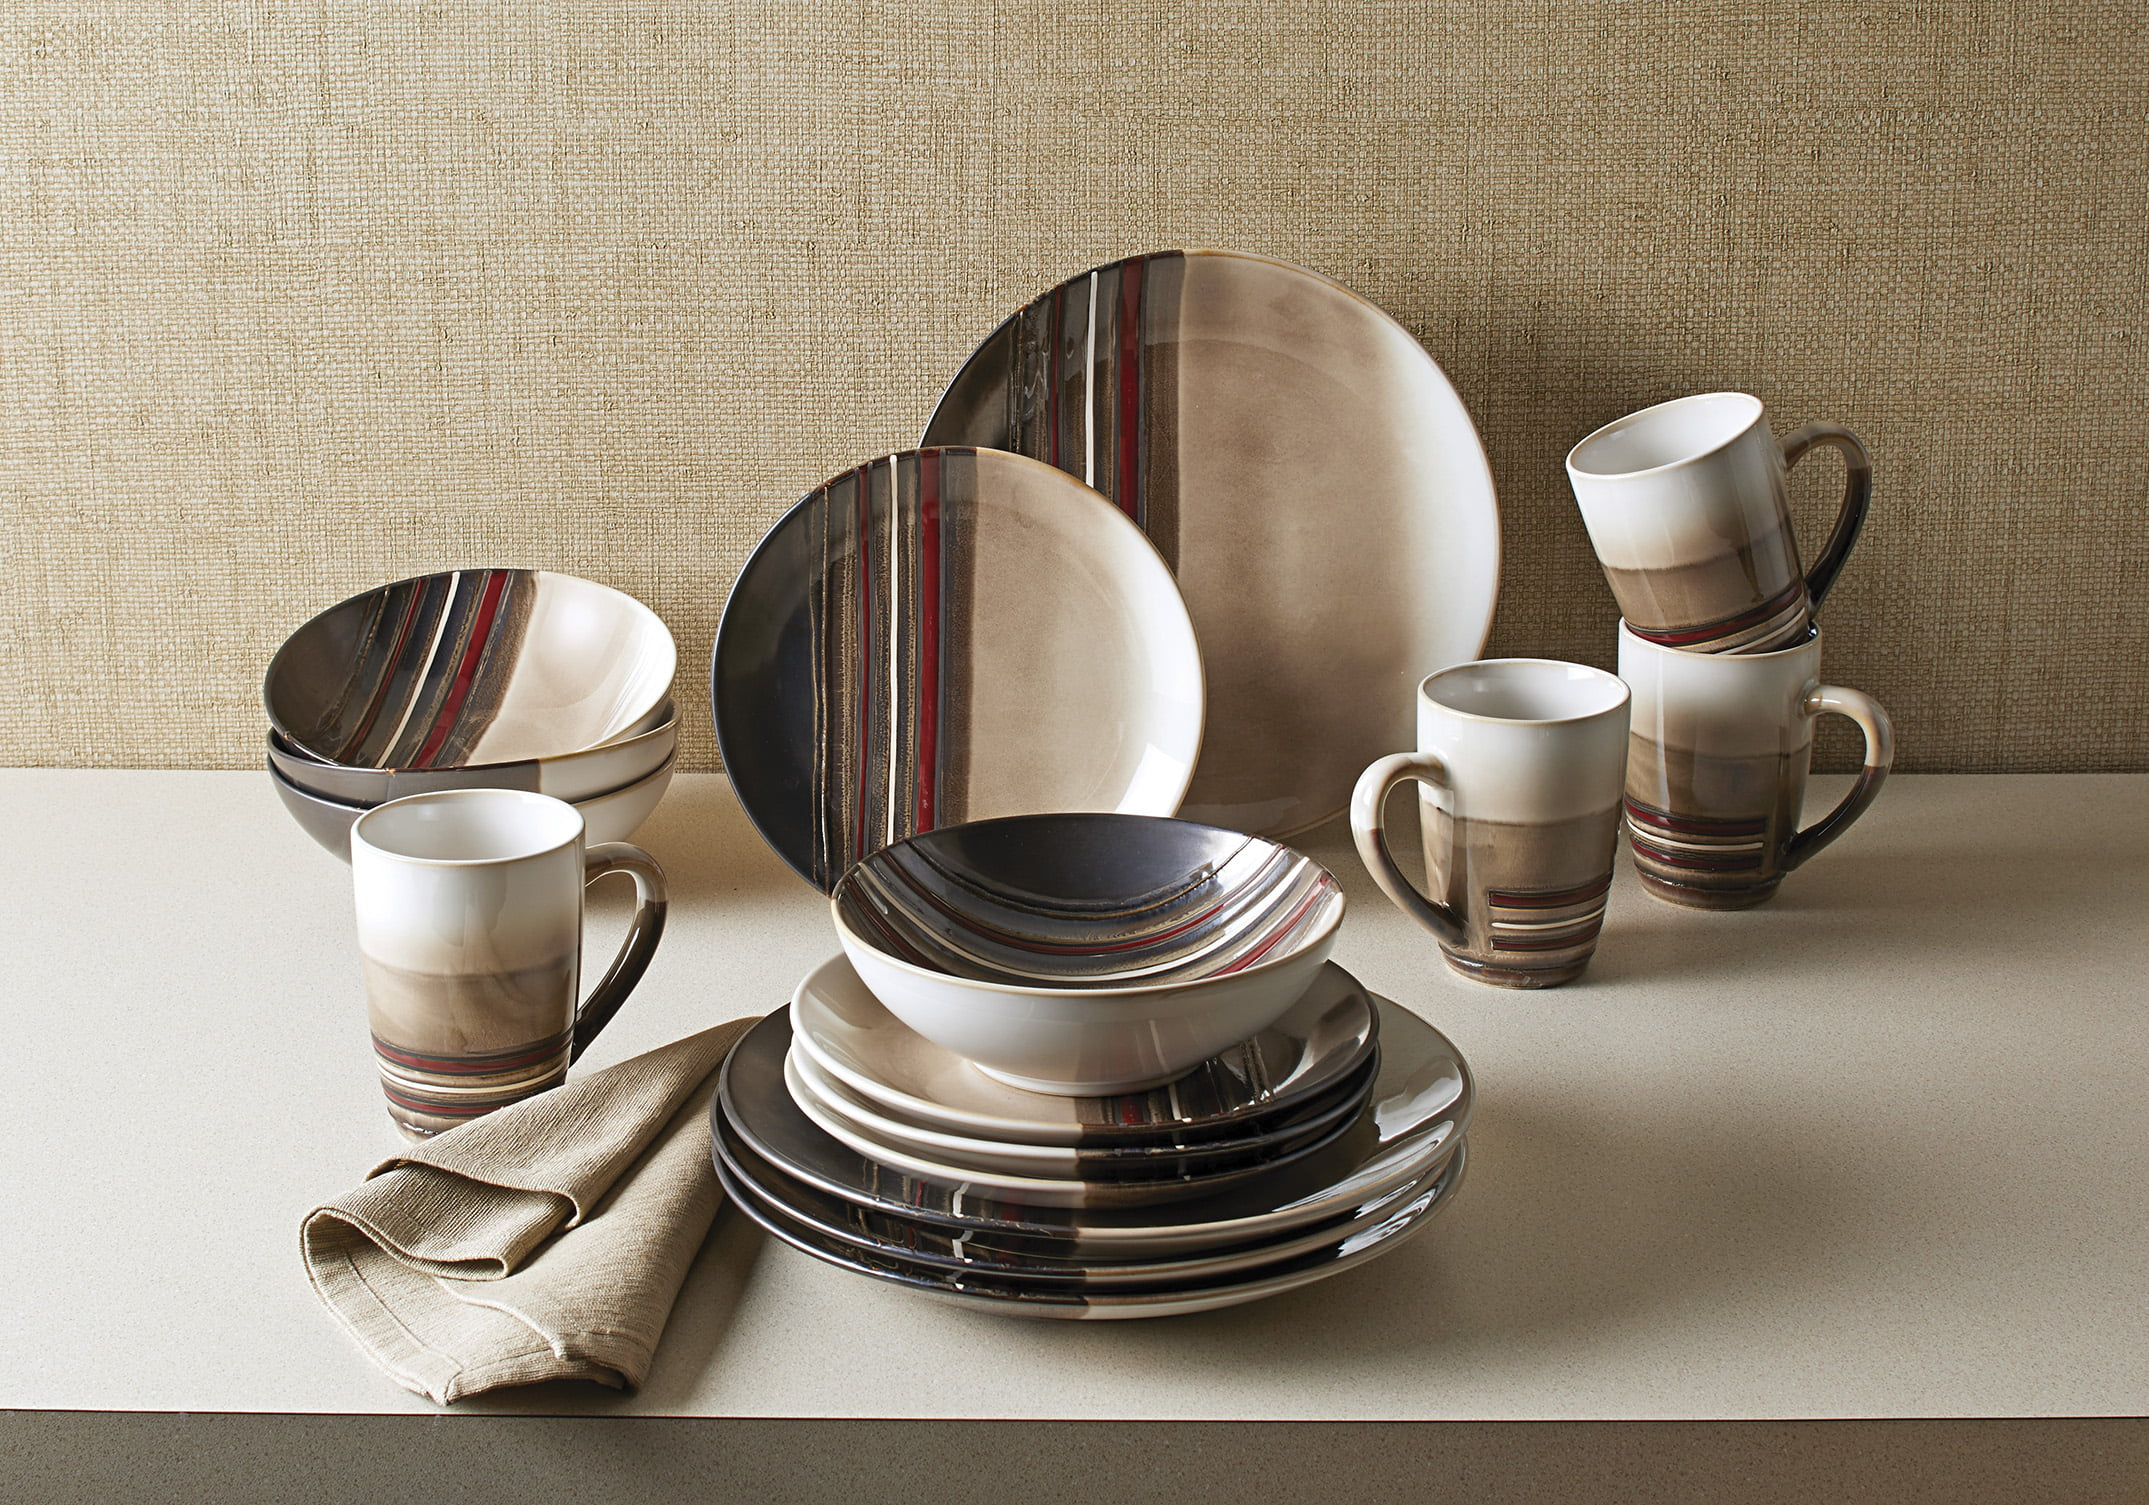 Better Homes and Gardens 16-Piece Rockport Dinnerware Set - Walmart.com